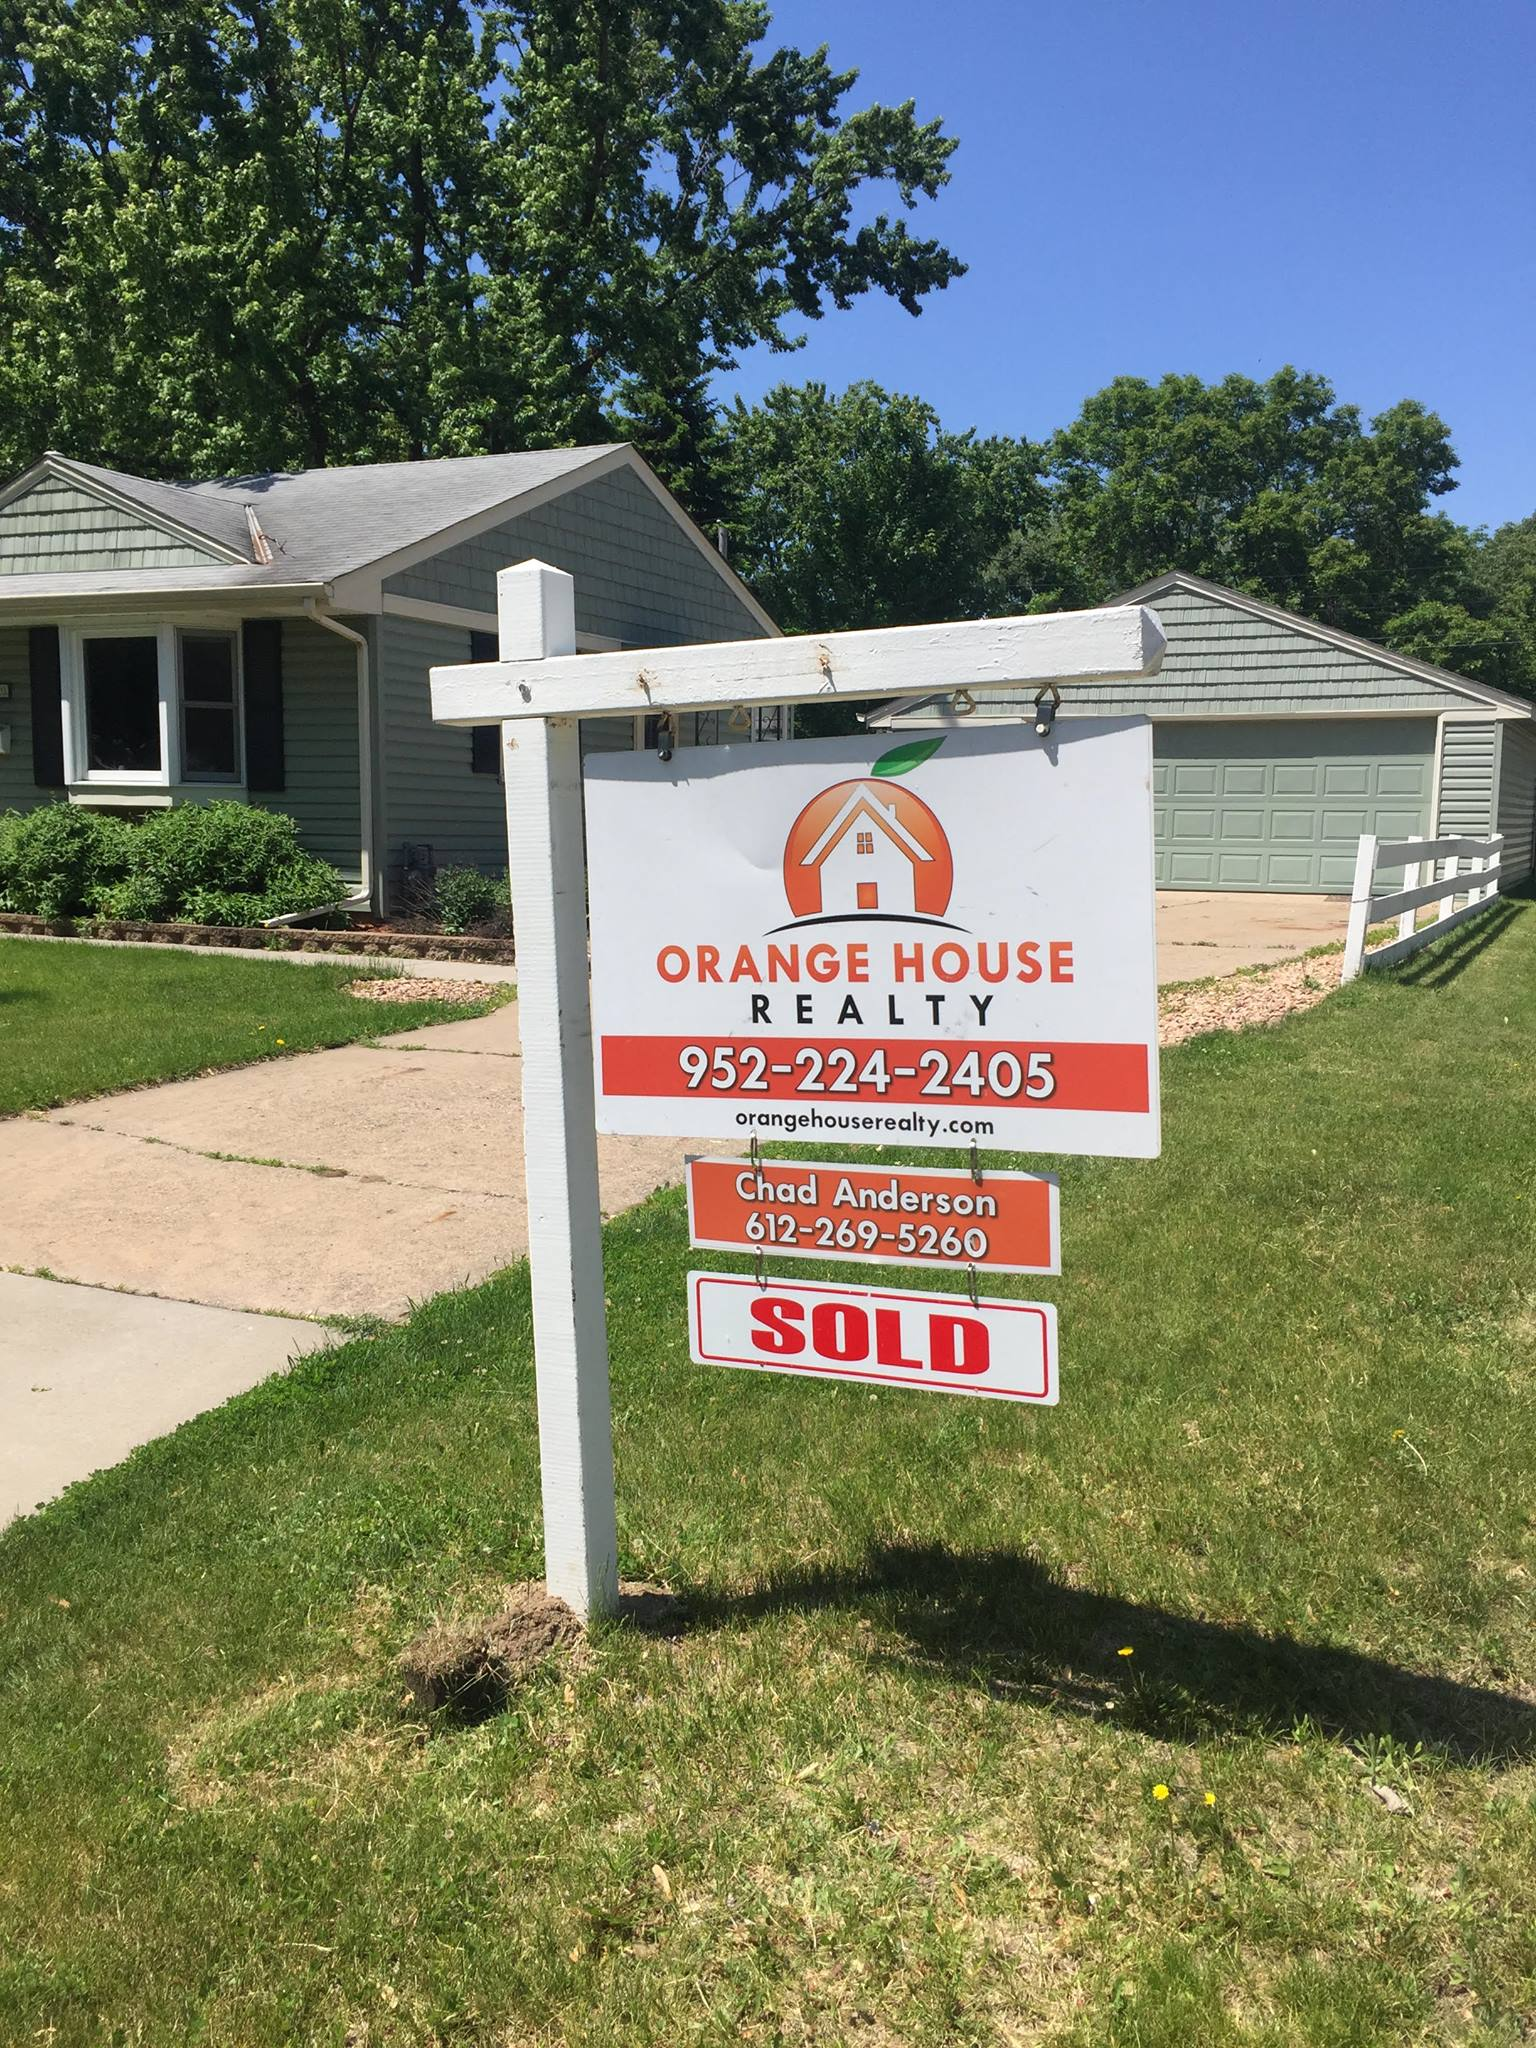 SOLD with Orange House Realty